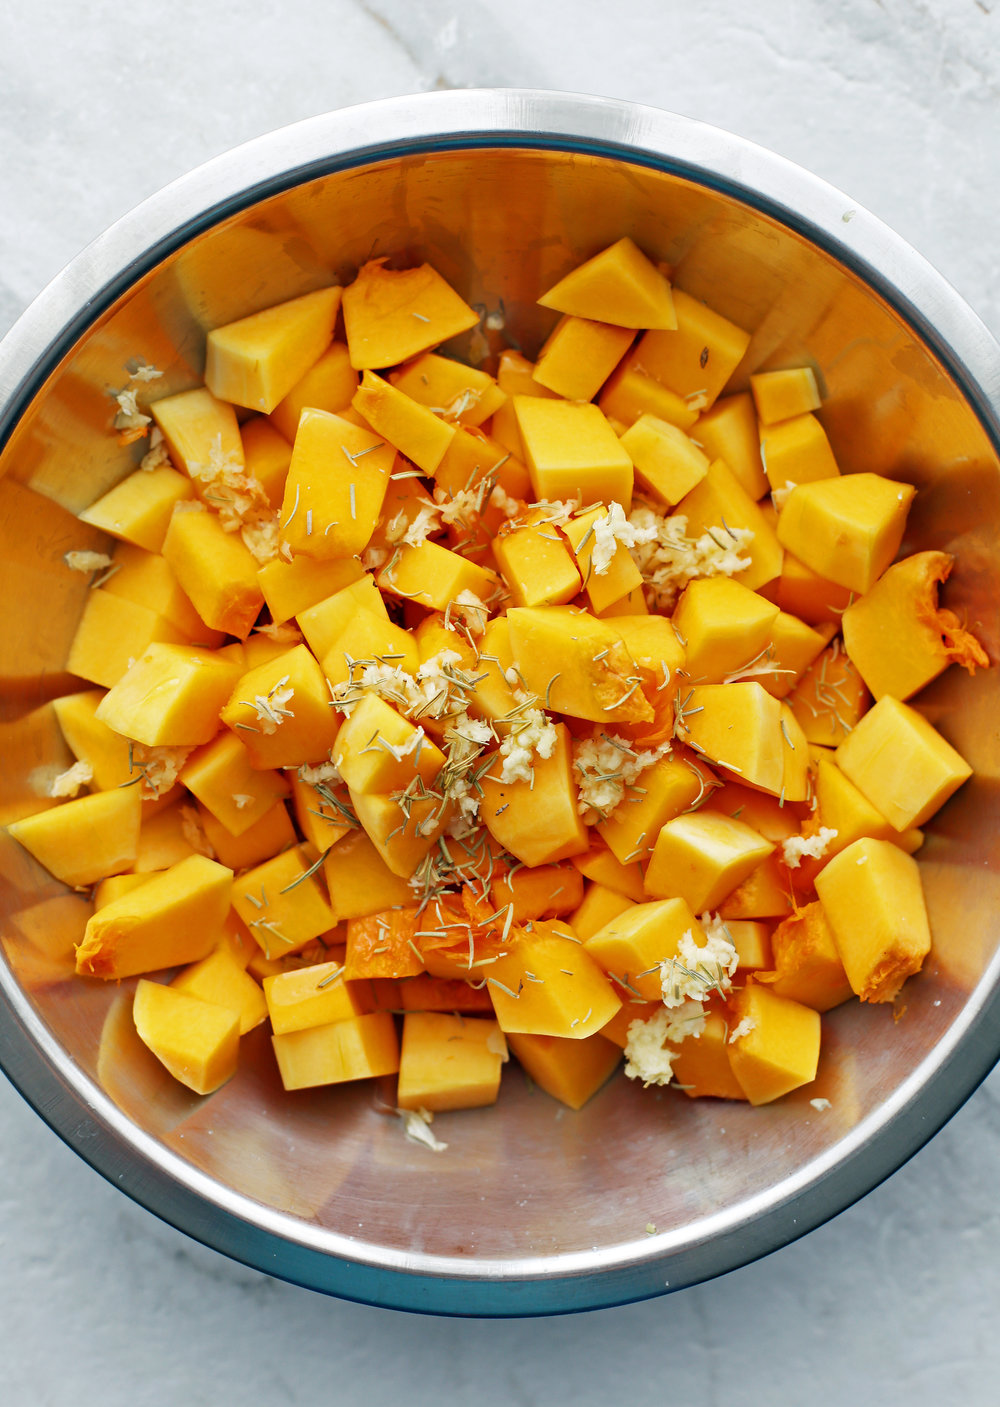 A metal bowl containing chopped butternut squash, garlic, herbs, and olive oil.